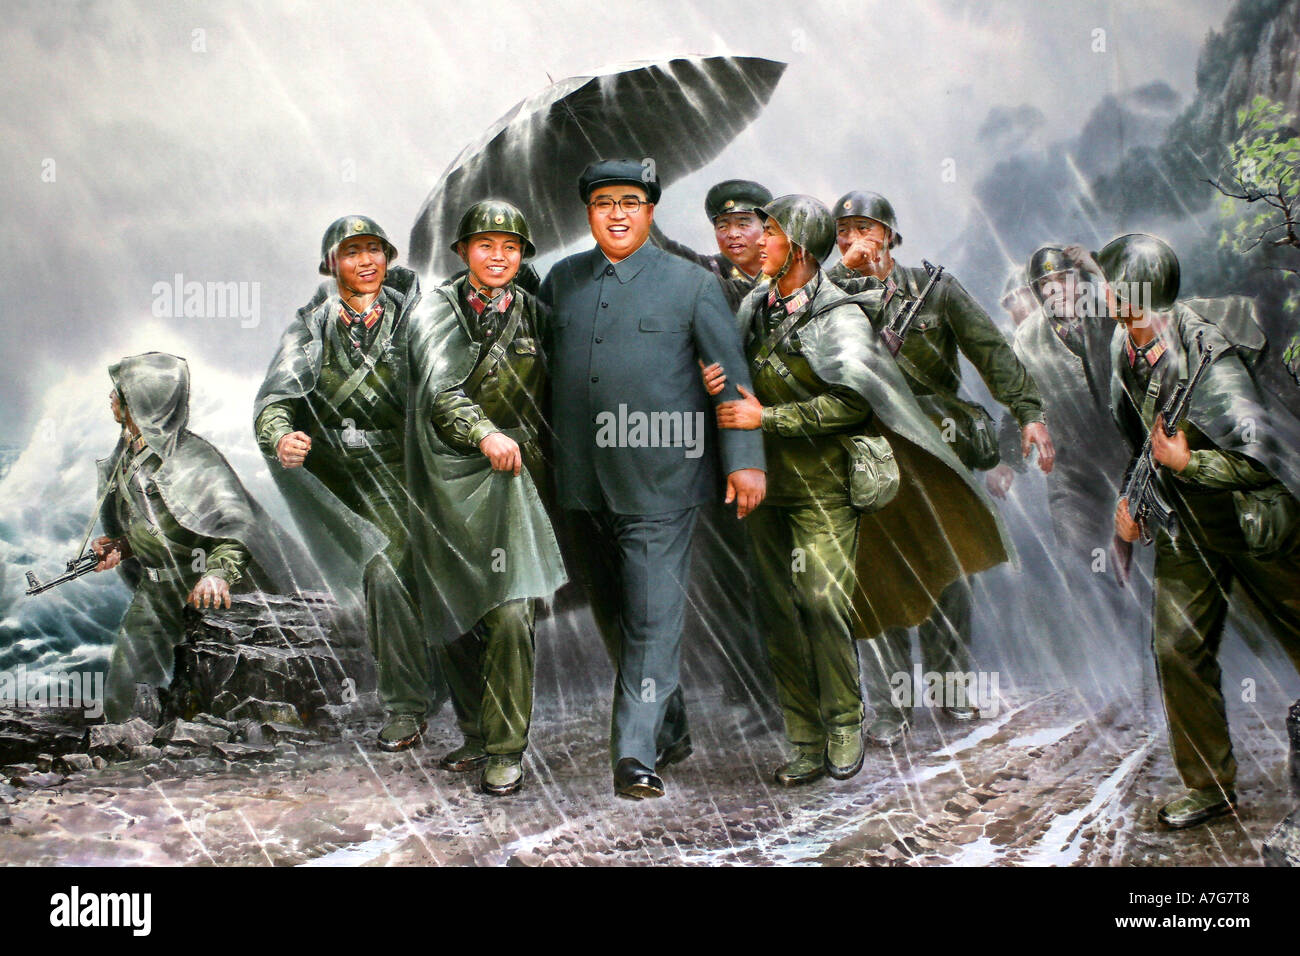 Painting in the Korean Art Museum of leader Kim Jong Il visiting his troops - Stock Image